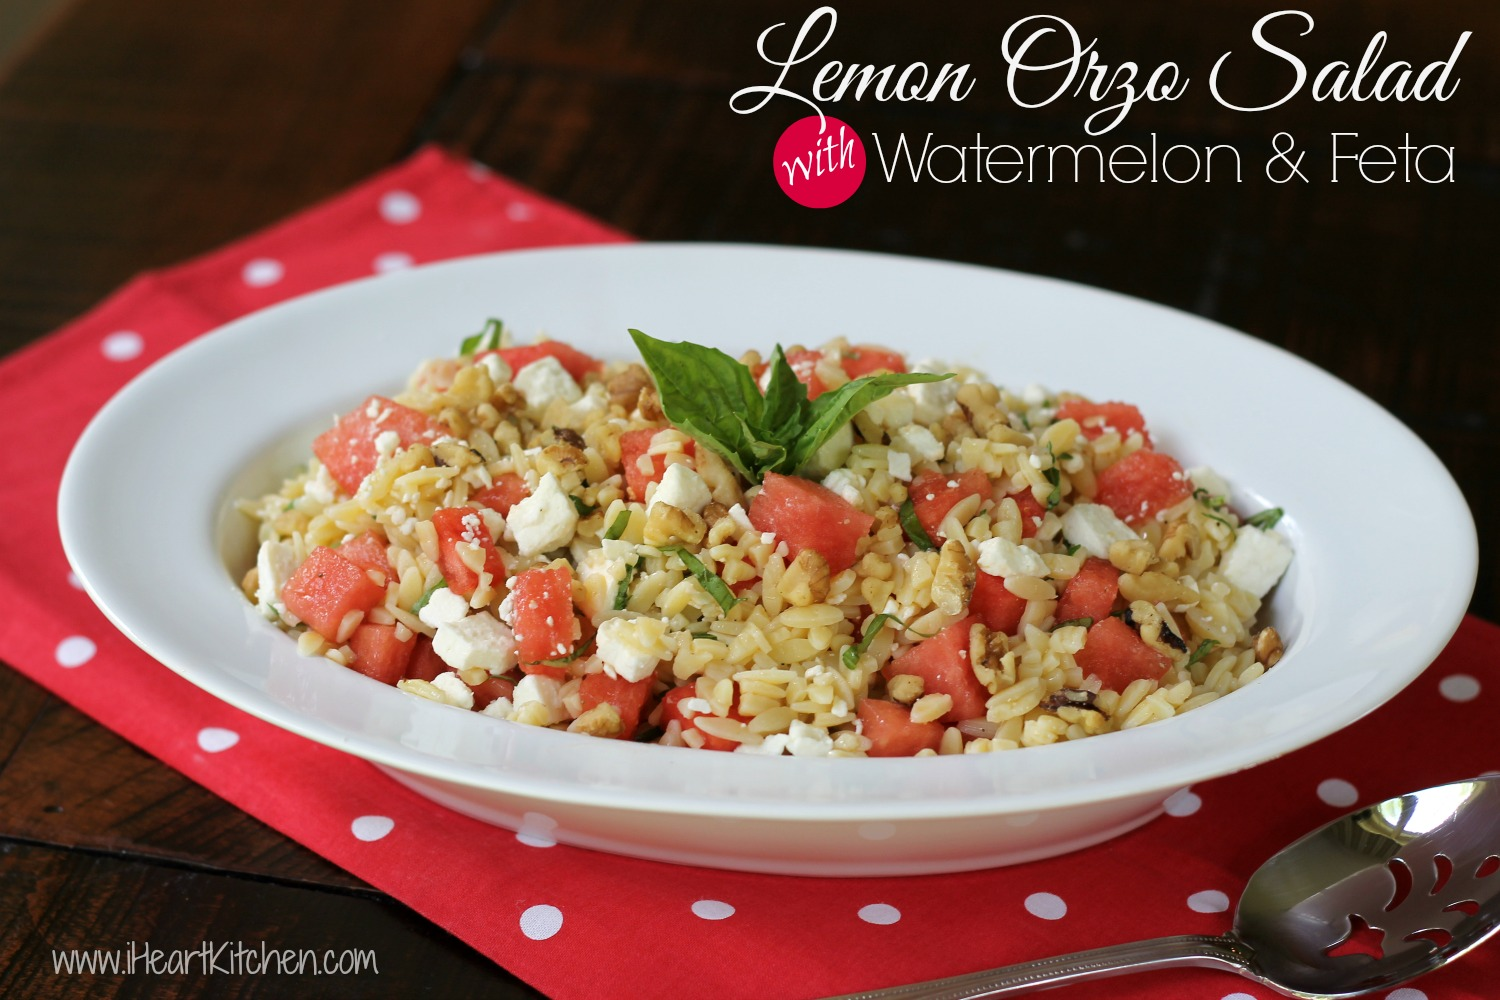 Lemon Orzo Salad with Watermelon and Feta